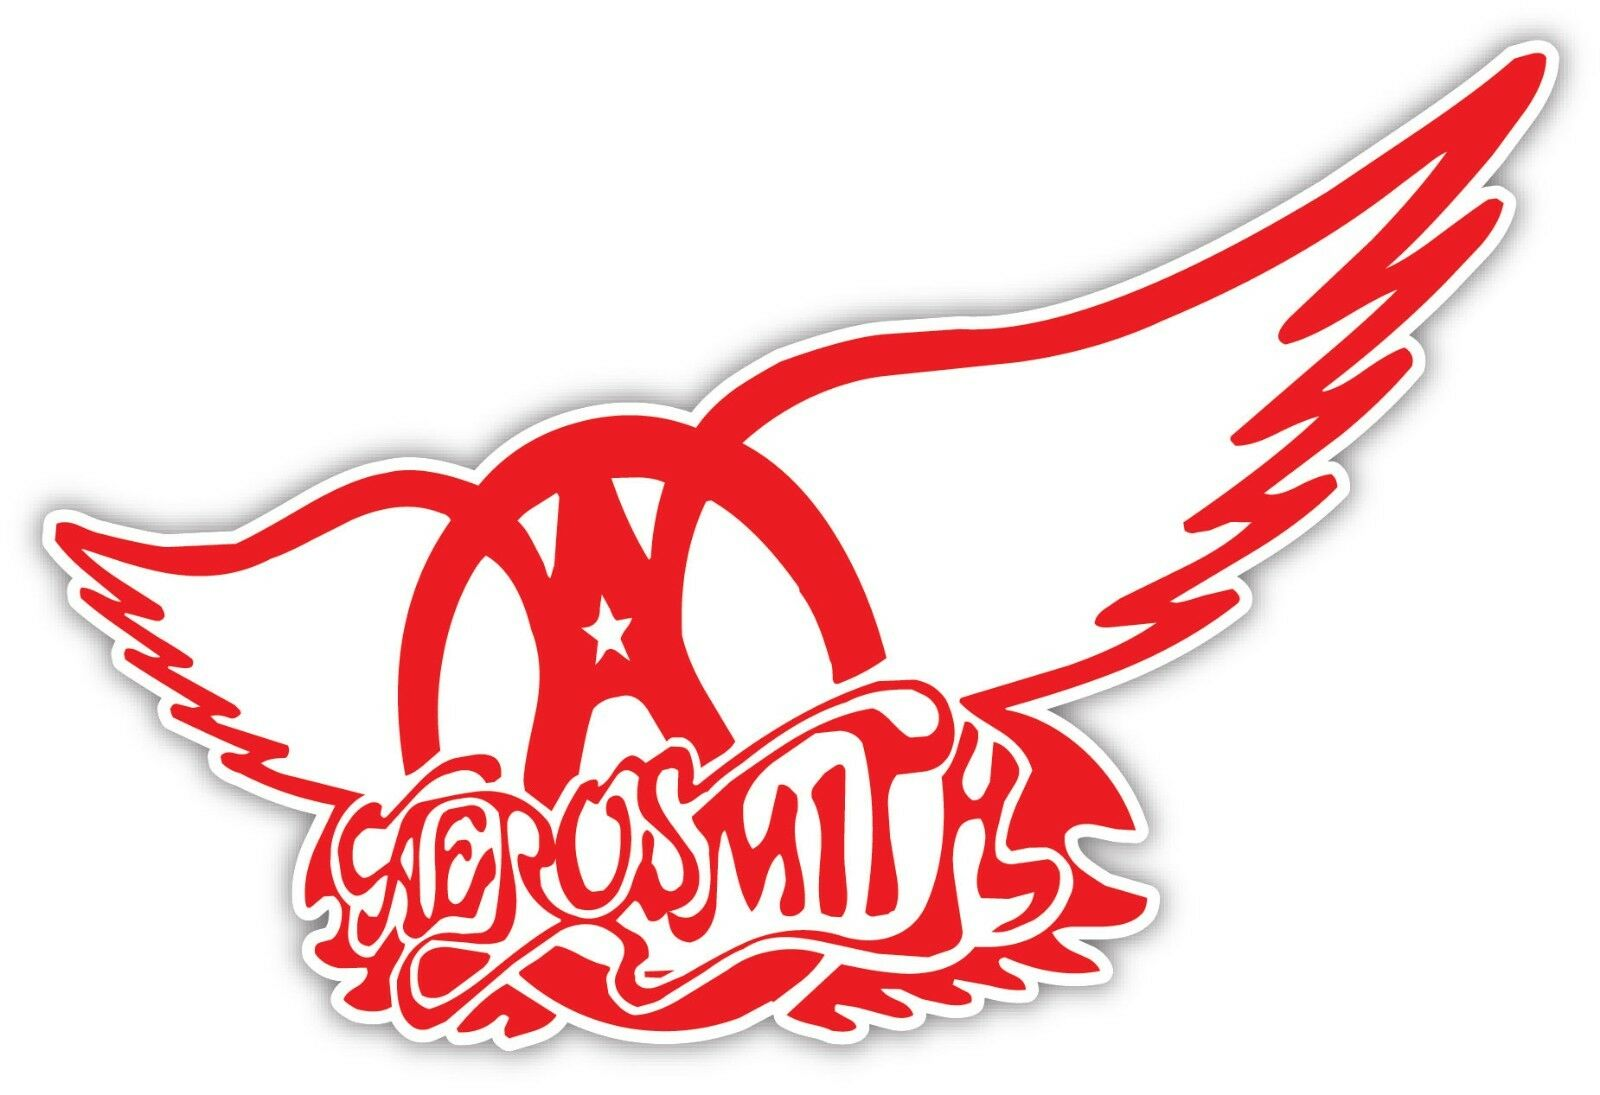 Home Decoration - Aerosmith Vinyl Sticker Decal *3 SIZES* Vinyl Bumper Wall Rock Metal